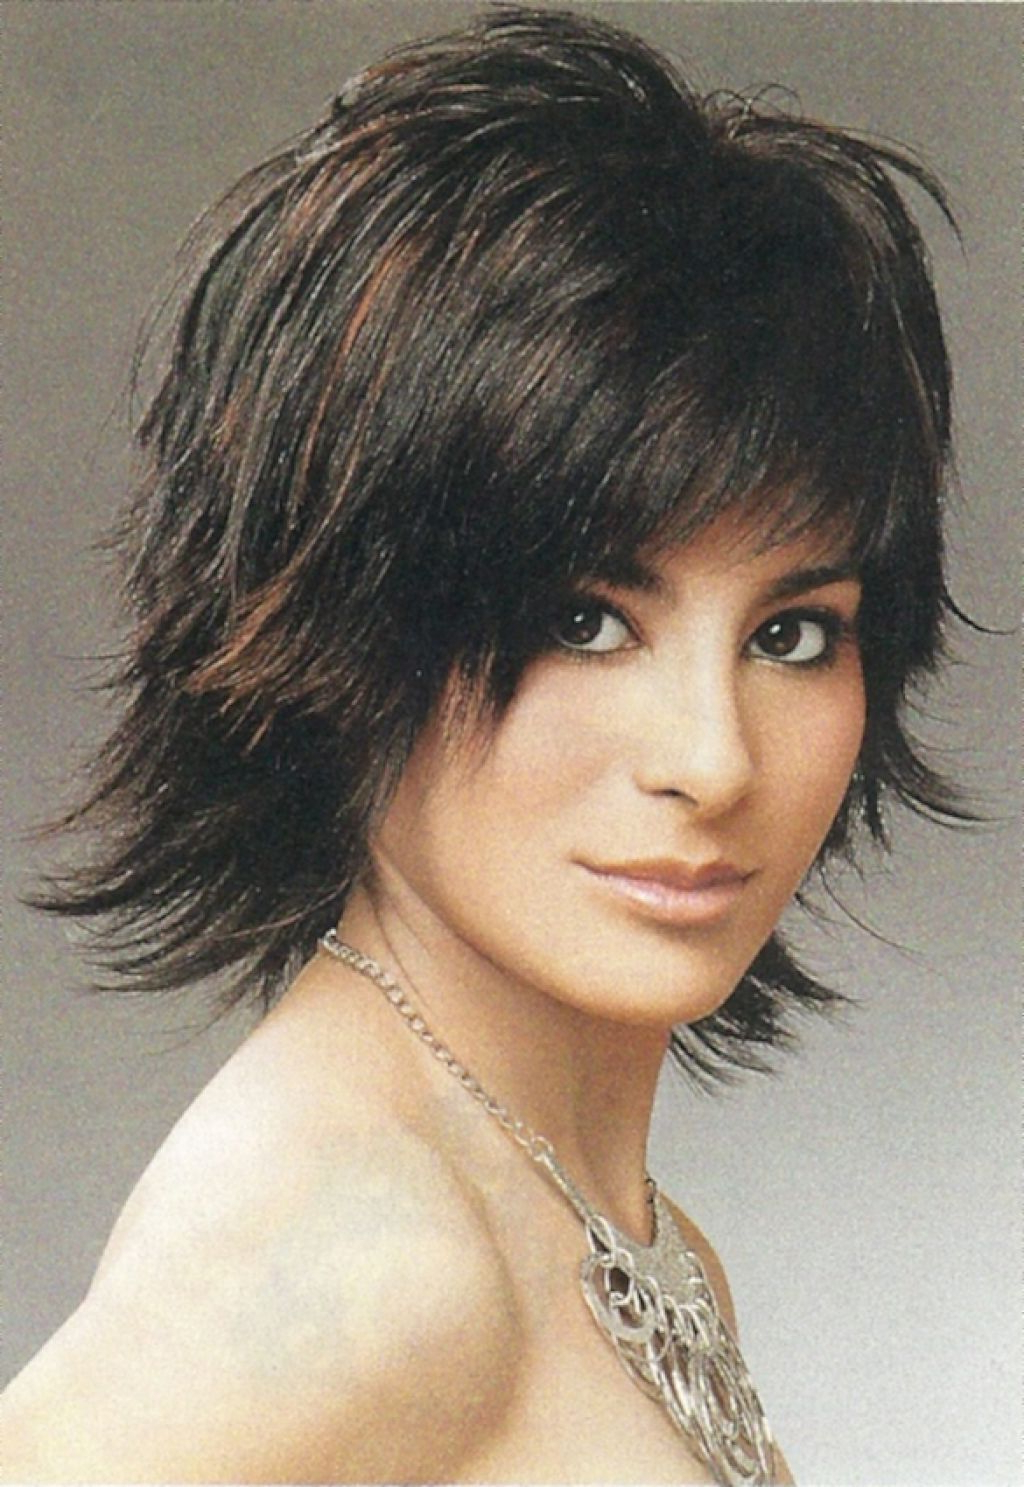 Messy Shaggy Hairstyles For Women | Shag Hairstyles , Short To With Short To Medium Shaggy Hairstyles (View 6 of 25)